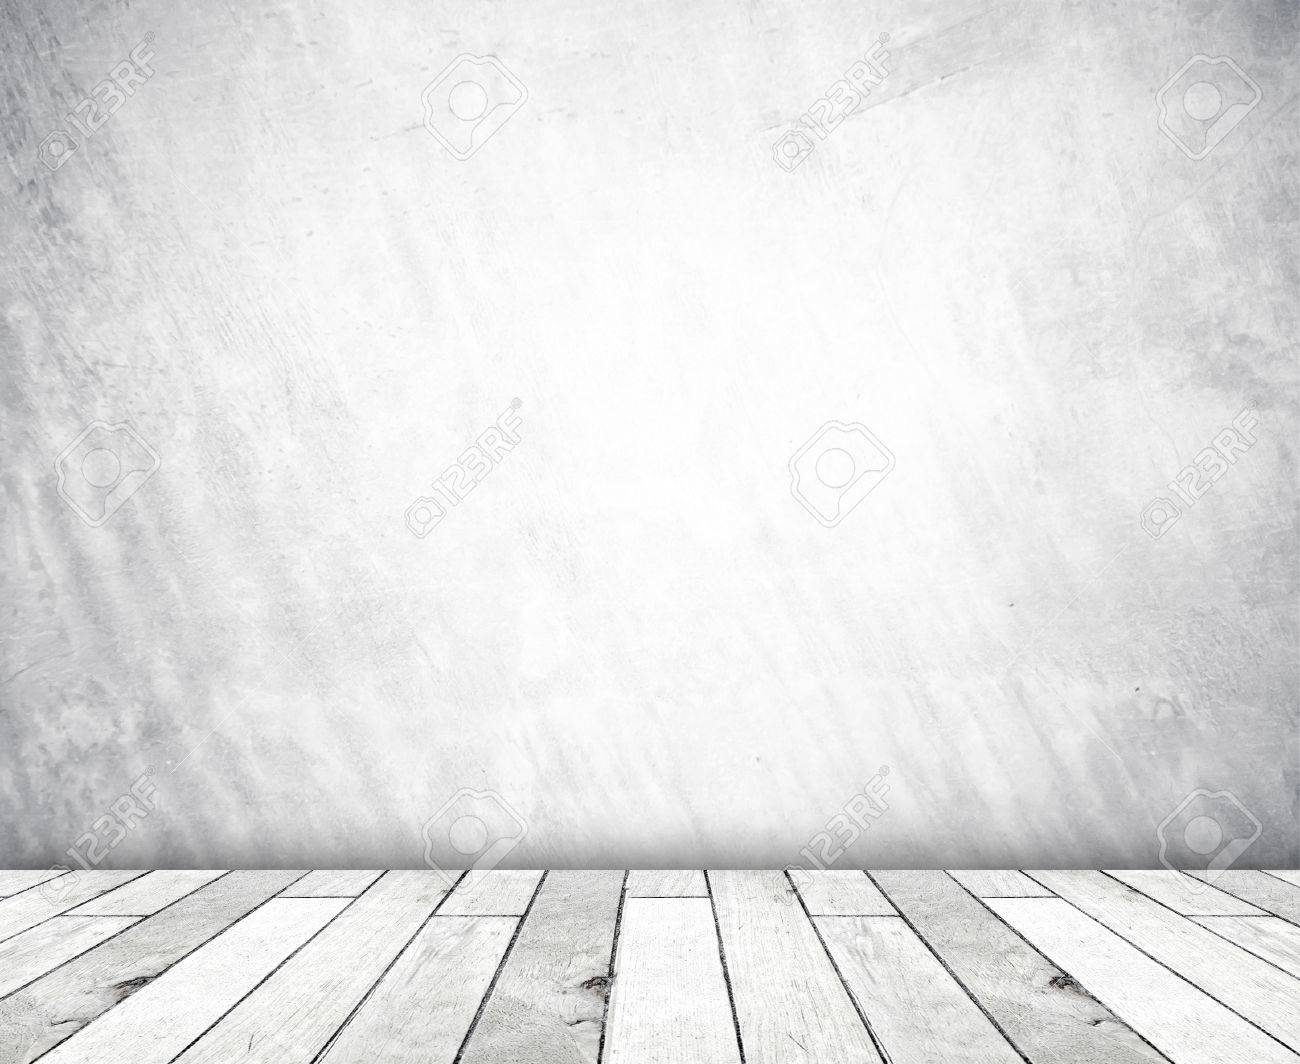 stock photo white cement wall and old wood floor empty perspective room in light tone floor46 perspective